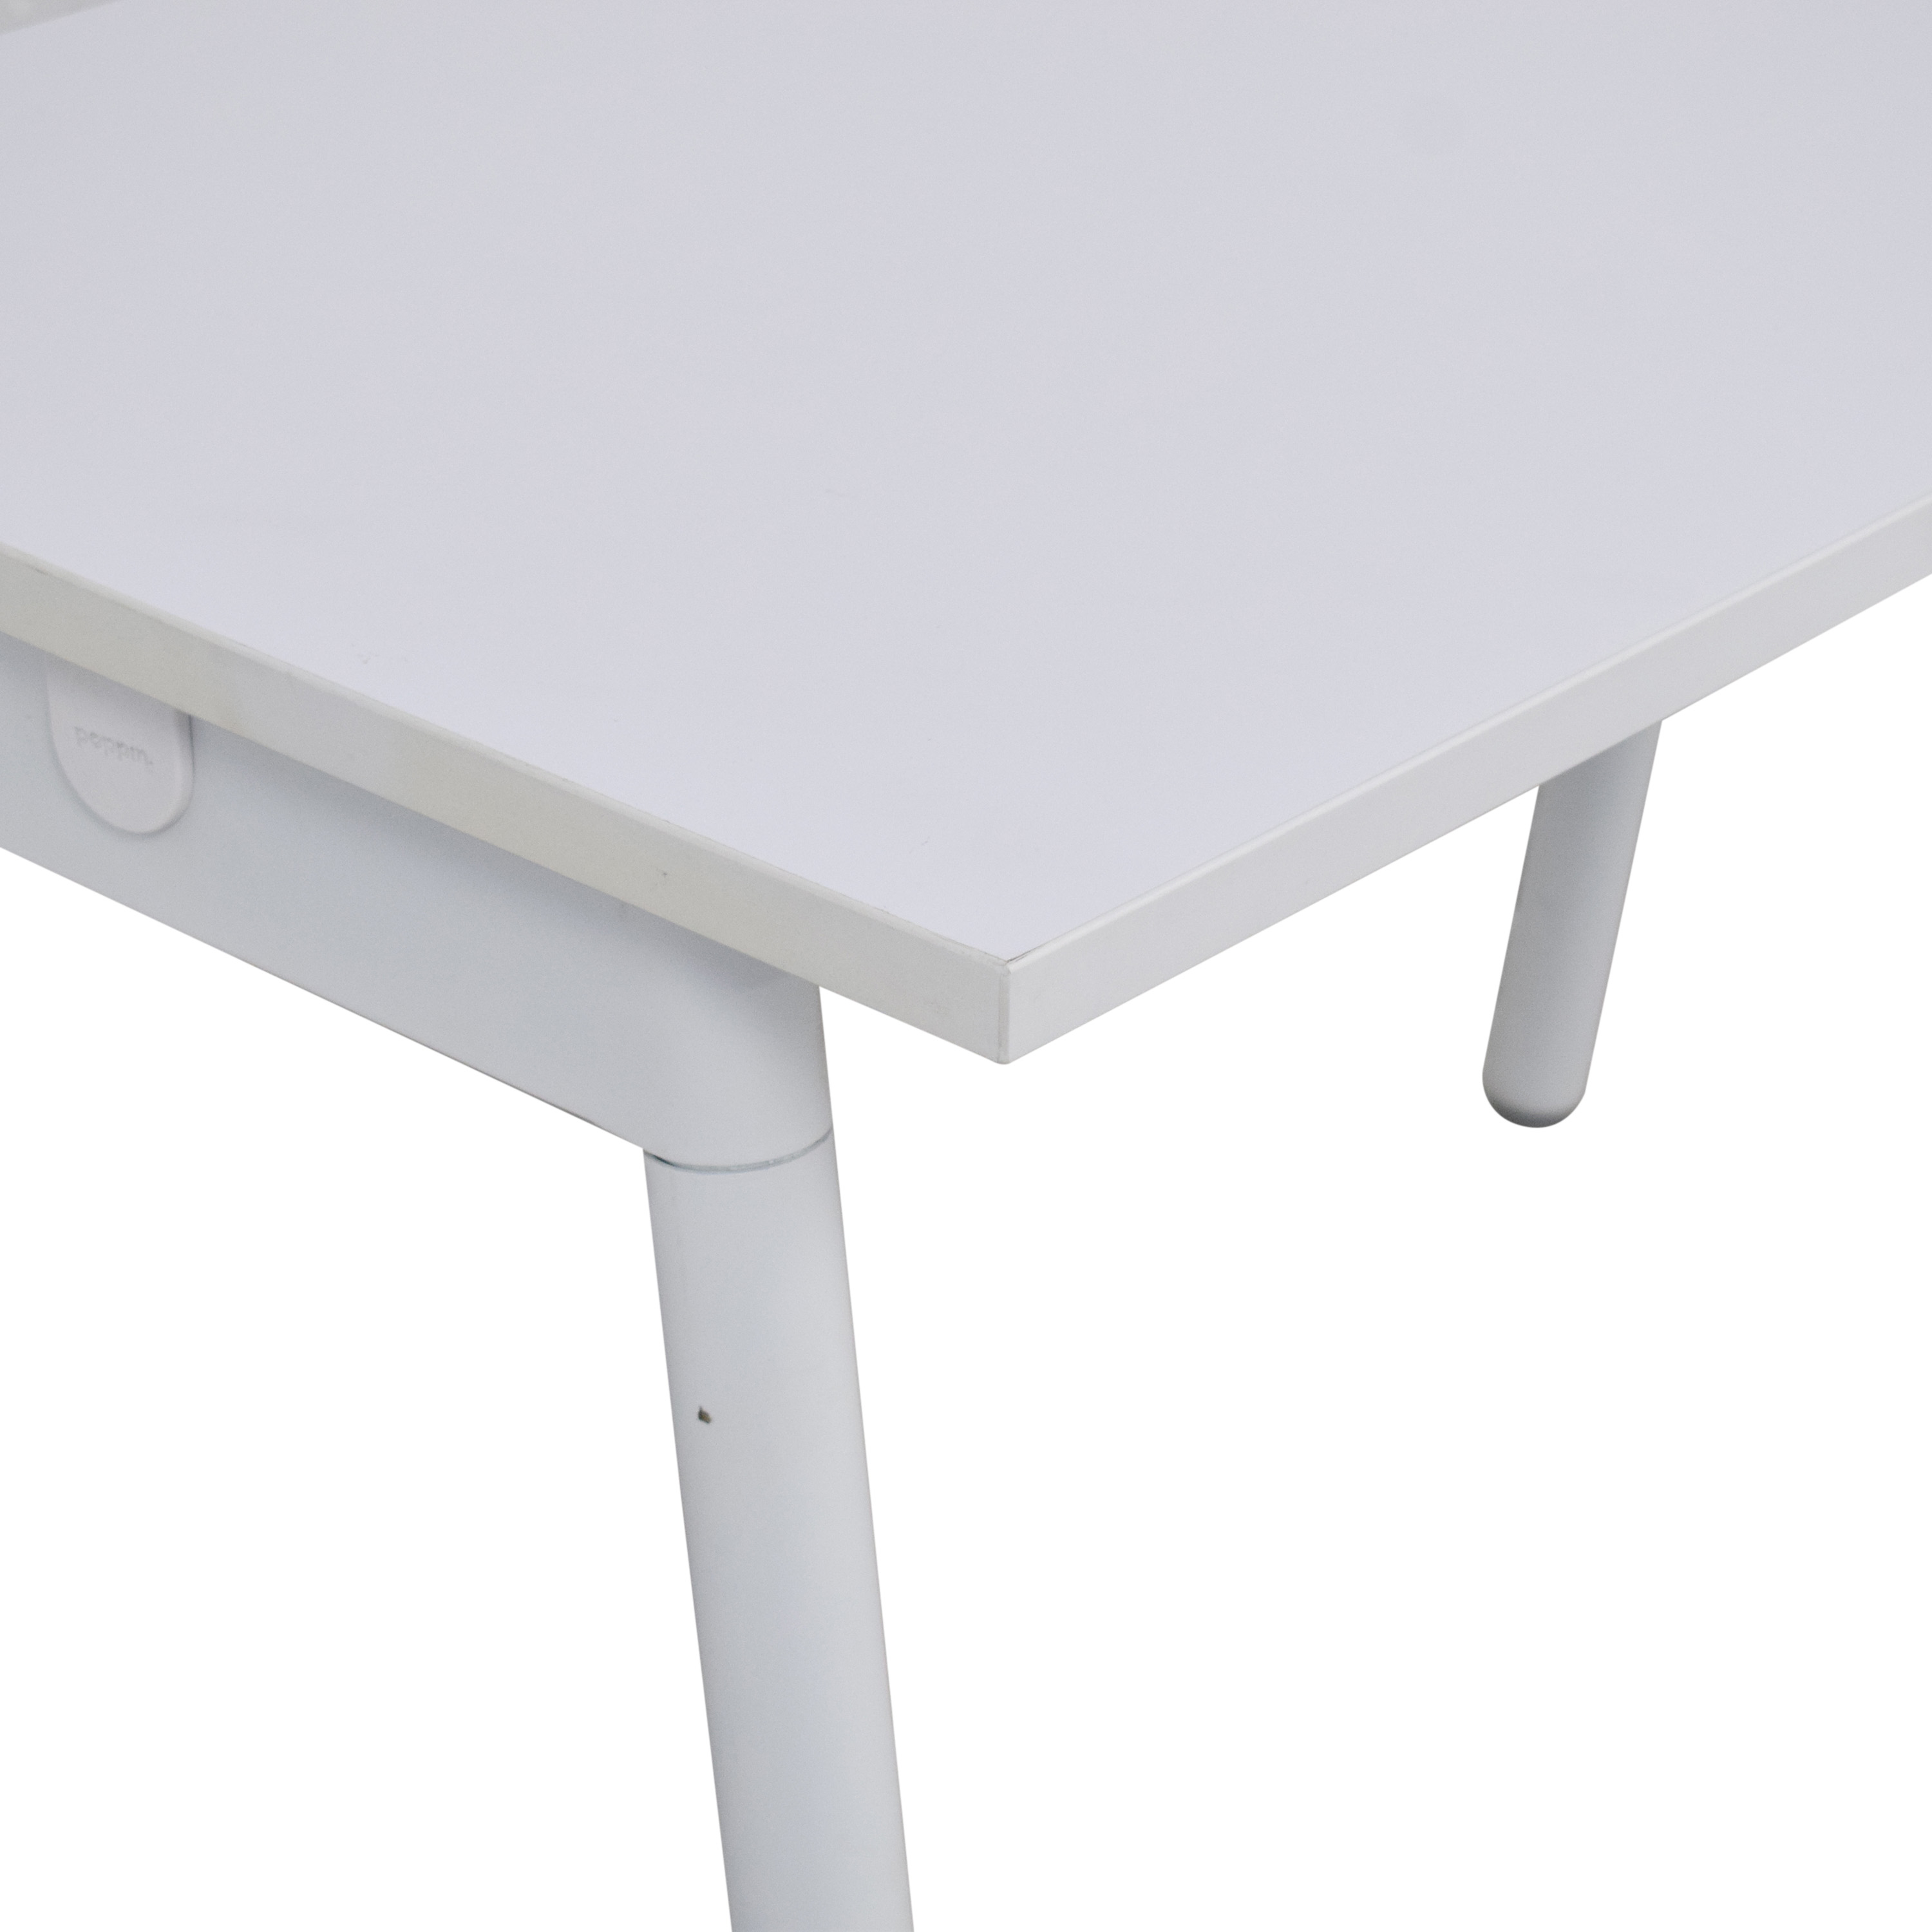 Poppin Series A Single Desk / Tables